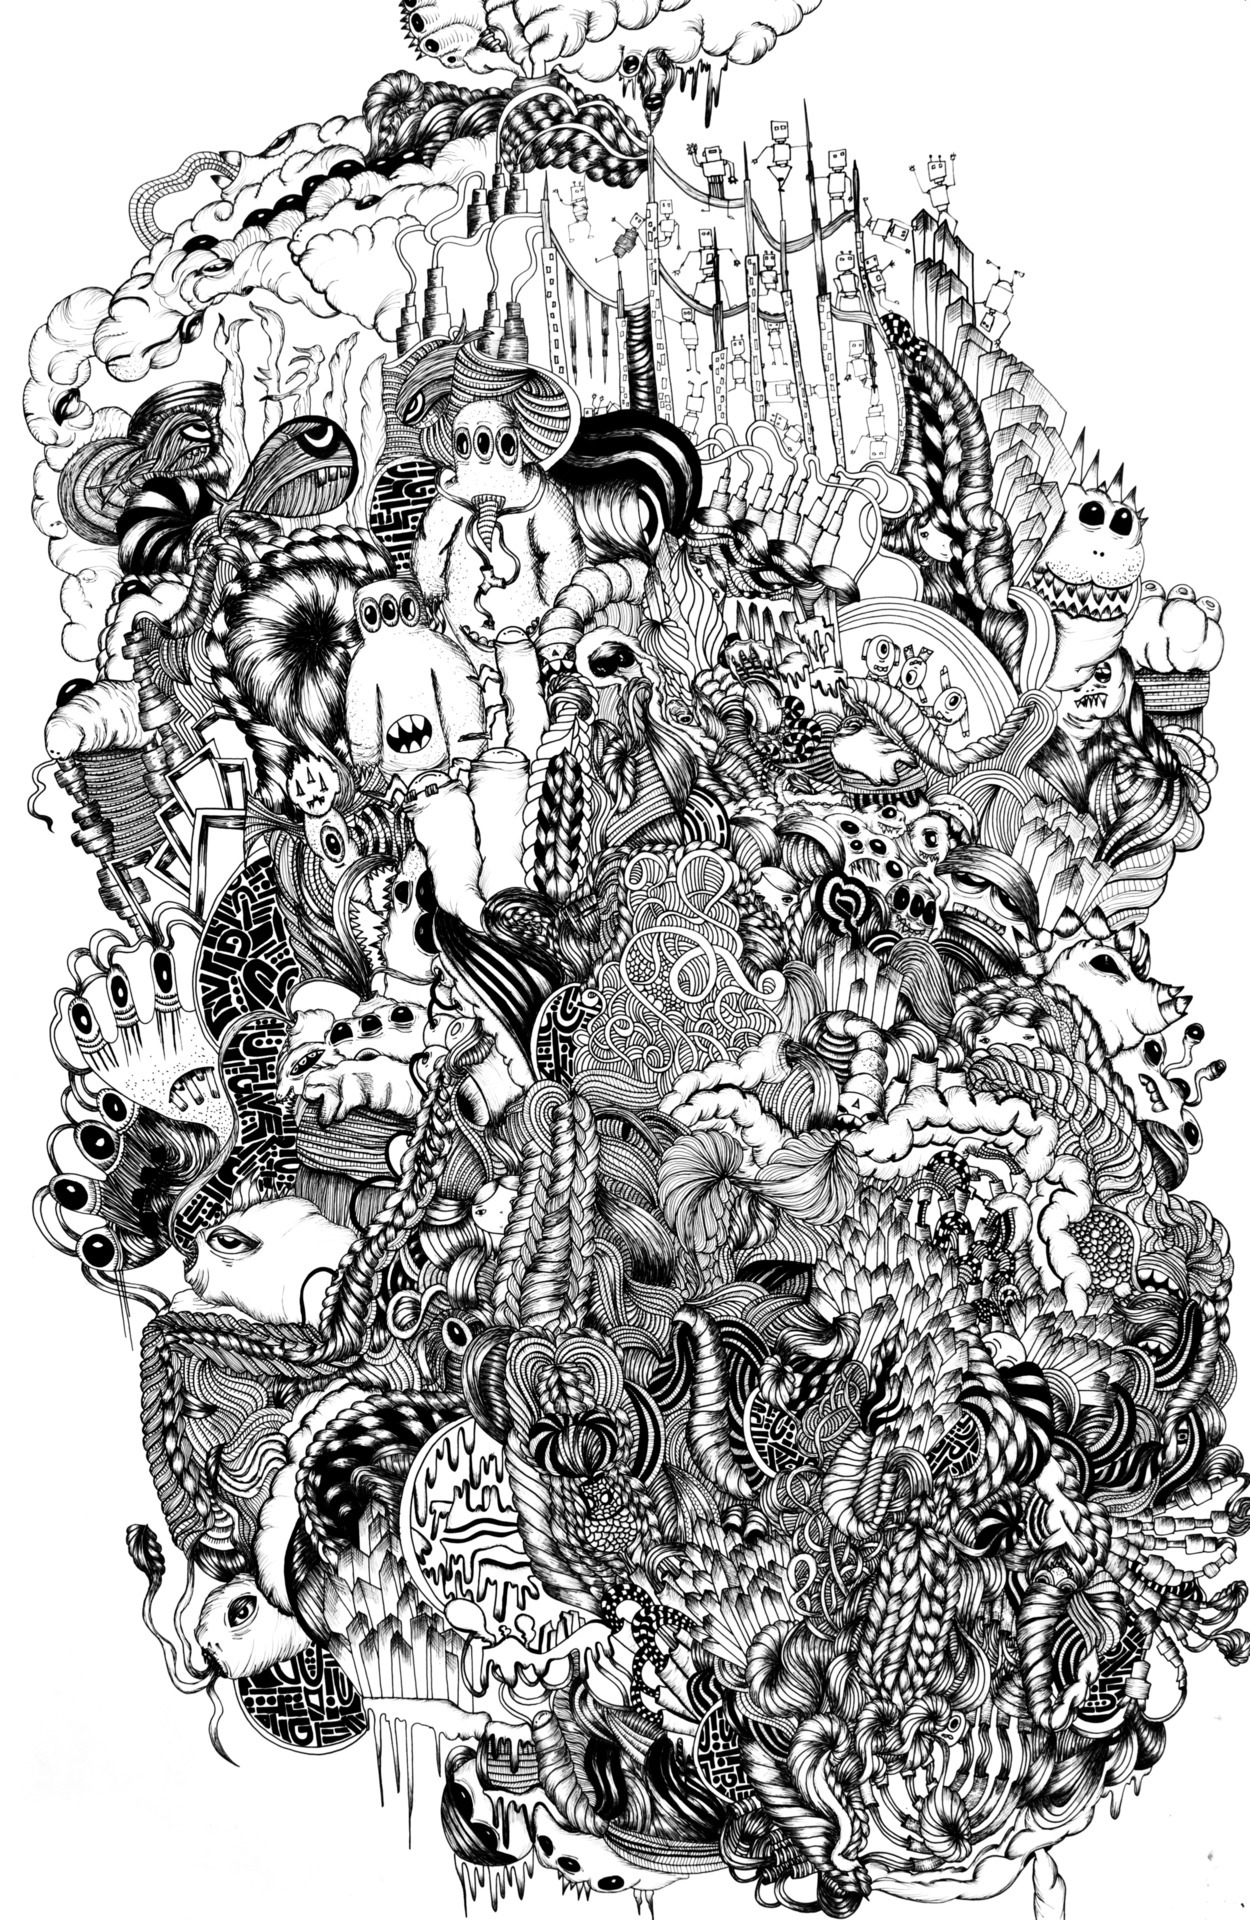 Pen and Ink. A collection of different drawing all into one giant world full of monsters, robots and other things that I see. http://davidzobel.tumblr.com/